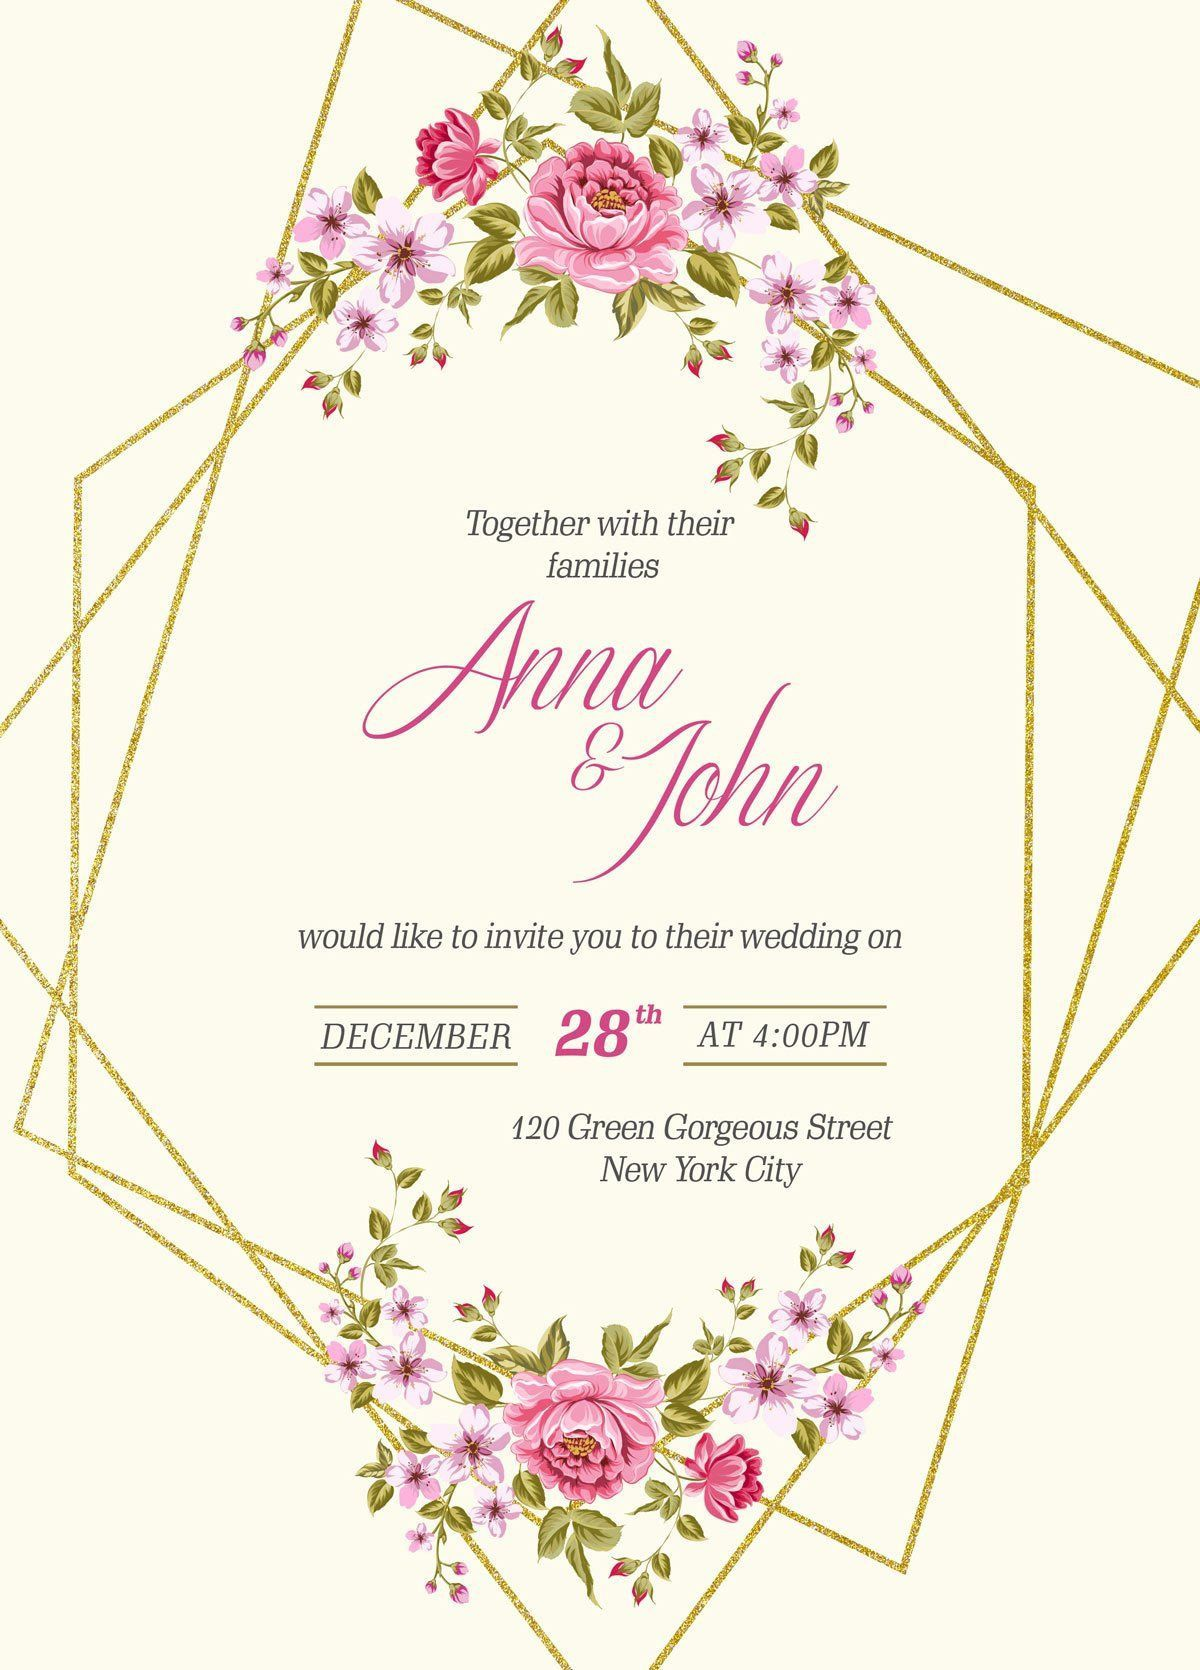 005 Wondrou Download Free Wedding Invitation Card Template Concept  Marriage Format PsdFull